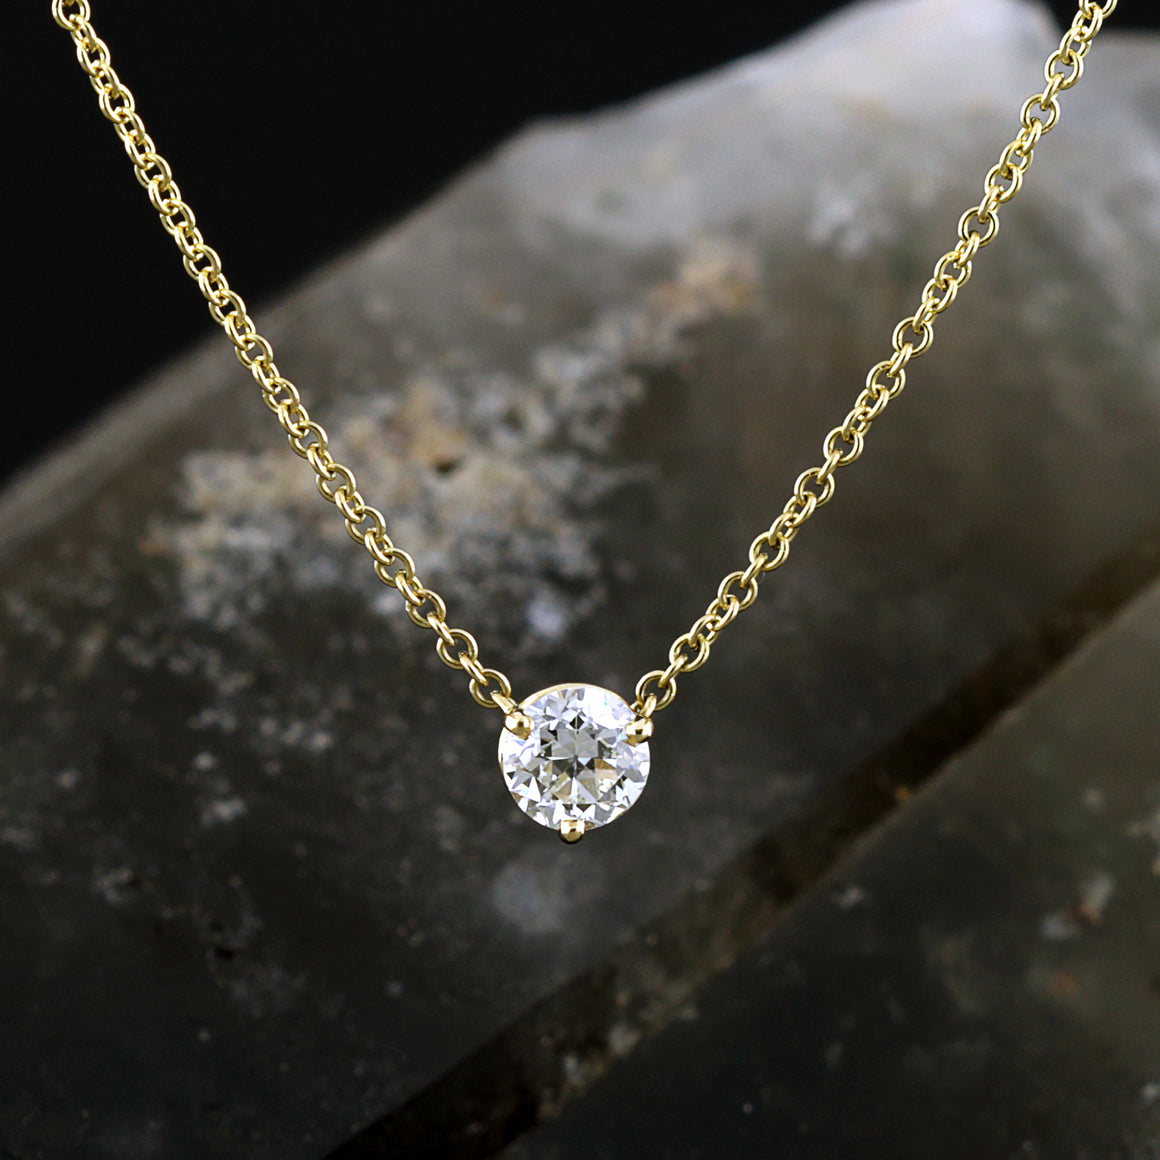 Diamond Solitaire Pendant in Yellow Gold - 0.46ct